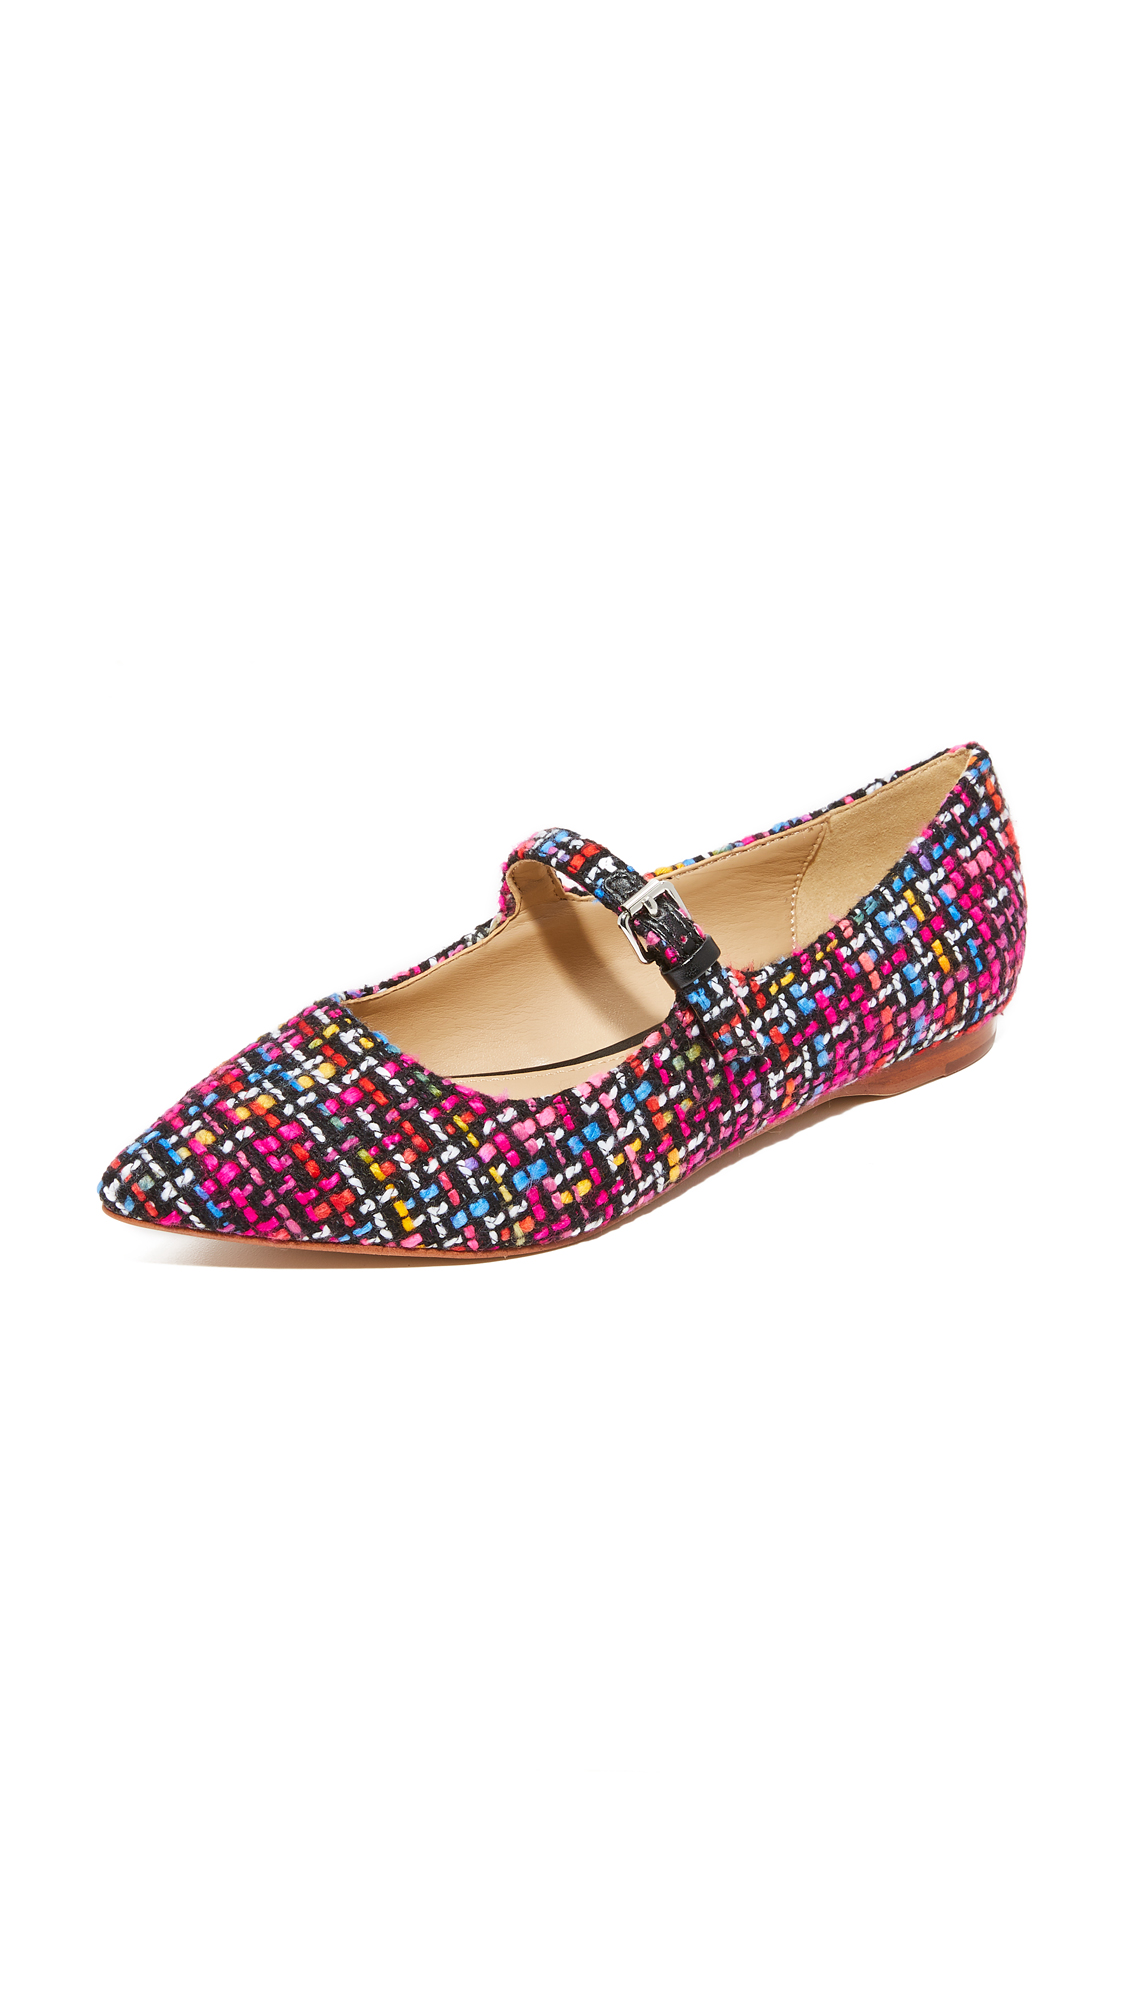 The Fix Estrella1 Strappy Flats - Pink Multi